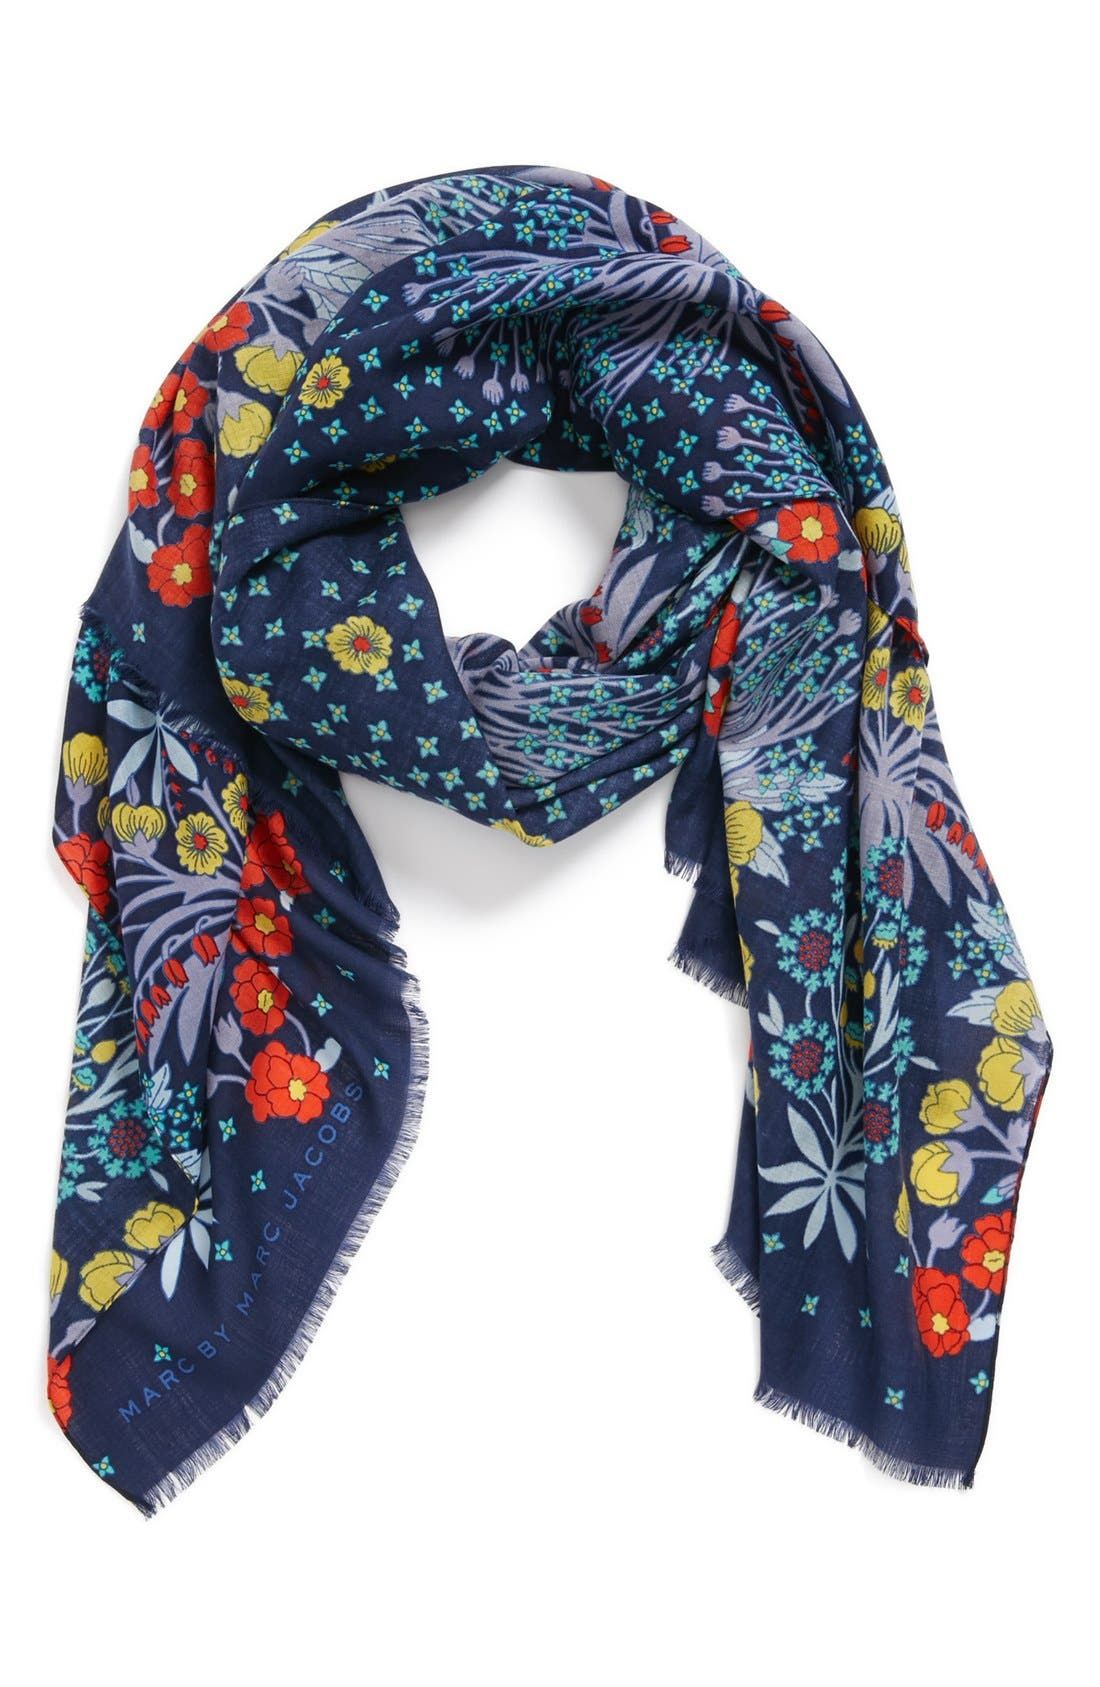 Alternate Image 1 Selected - MARC BY MARC JACOBS 'Madeline' Botanical Mercerized Wool Scarf